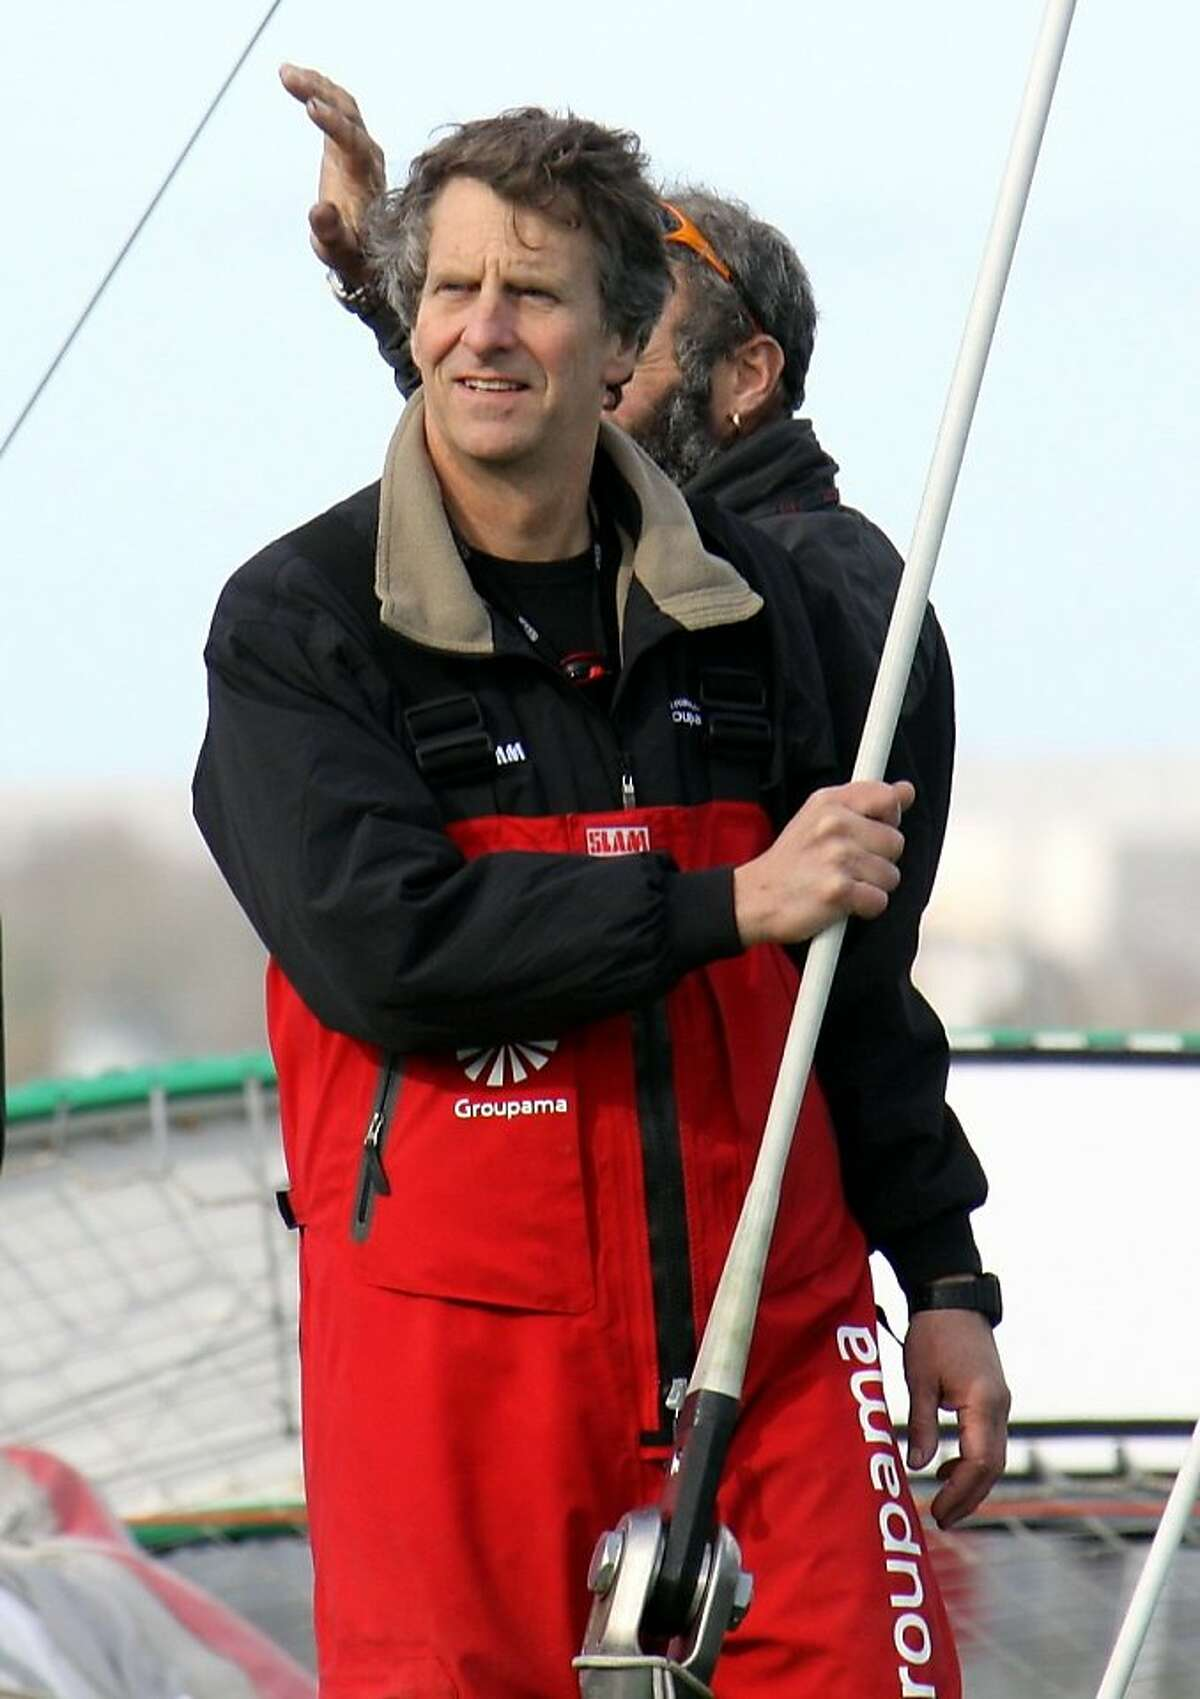 Rolex Yachtsman of the Year, Palo Alto sailor and sports TV innovator Stan Honey, aboard Groupama 3 completing fastest non-stop sailing circumnavigation in history.